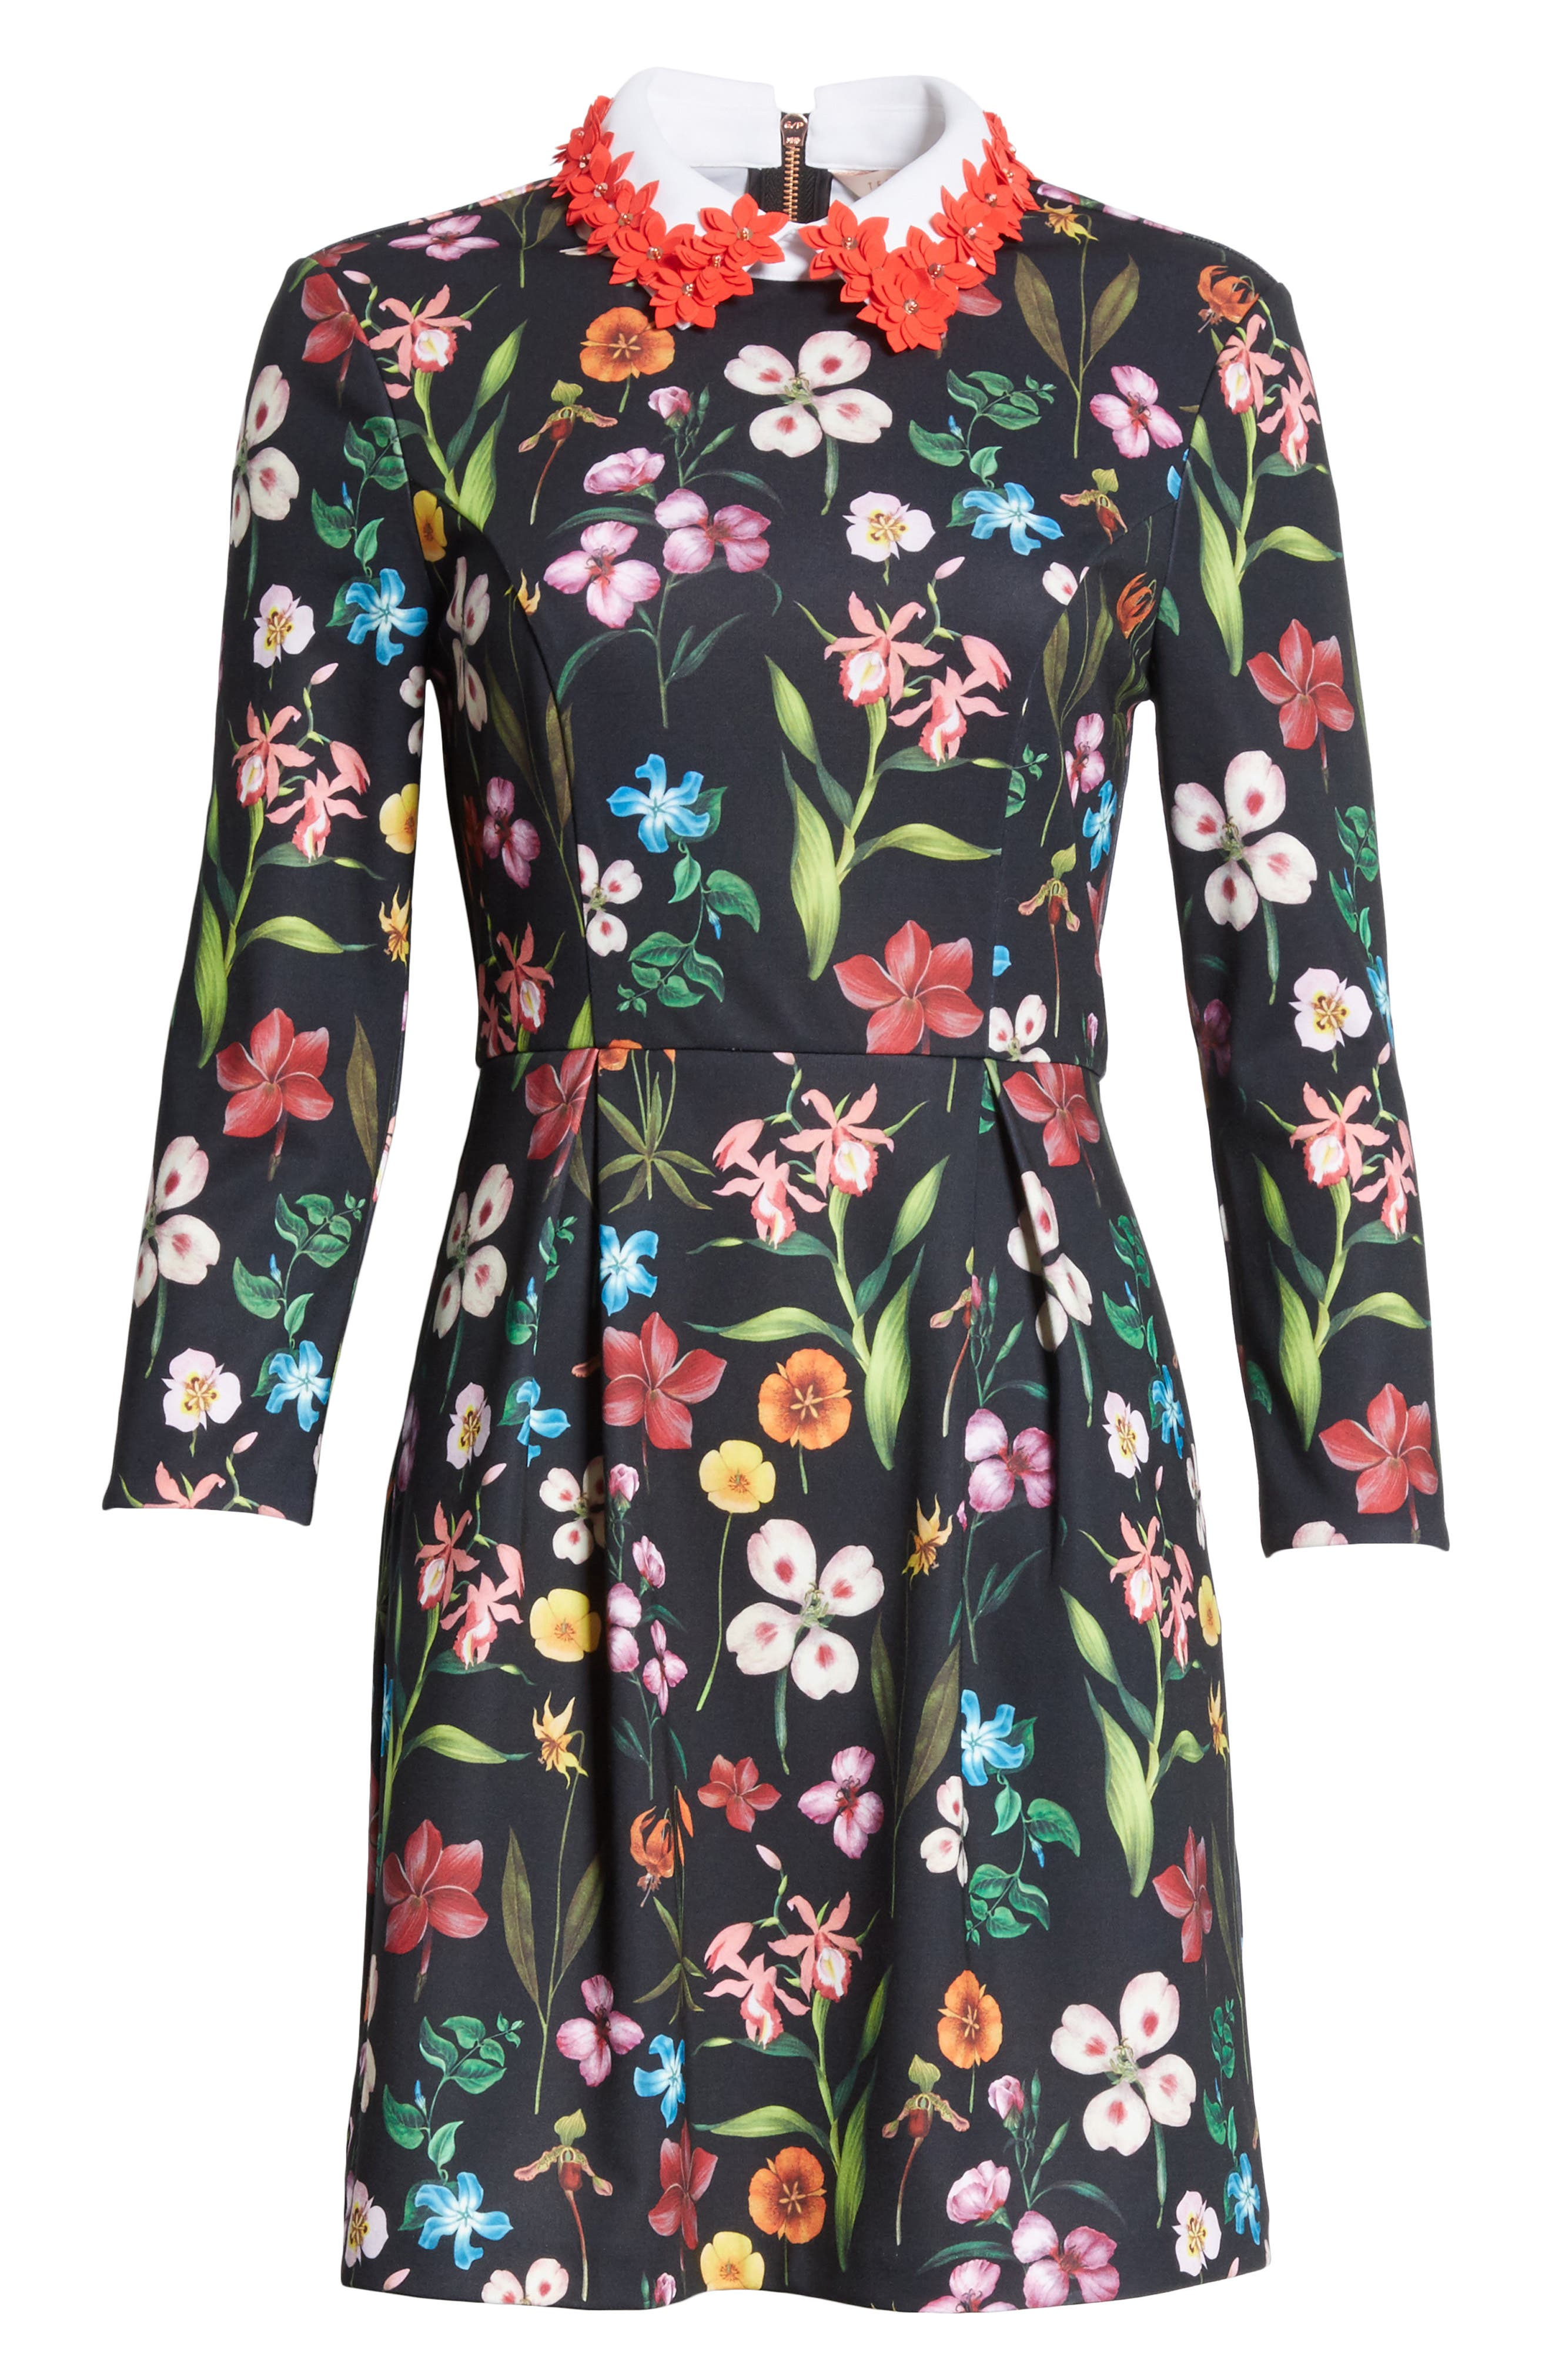 Hampton Embellished Collar Floral Dress,                             Alternate thumbnail 6, color,